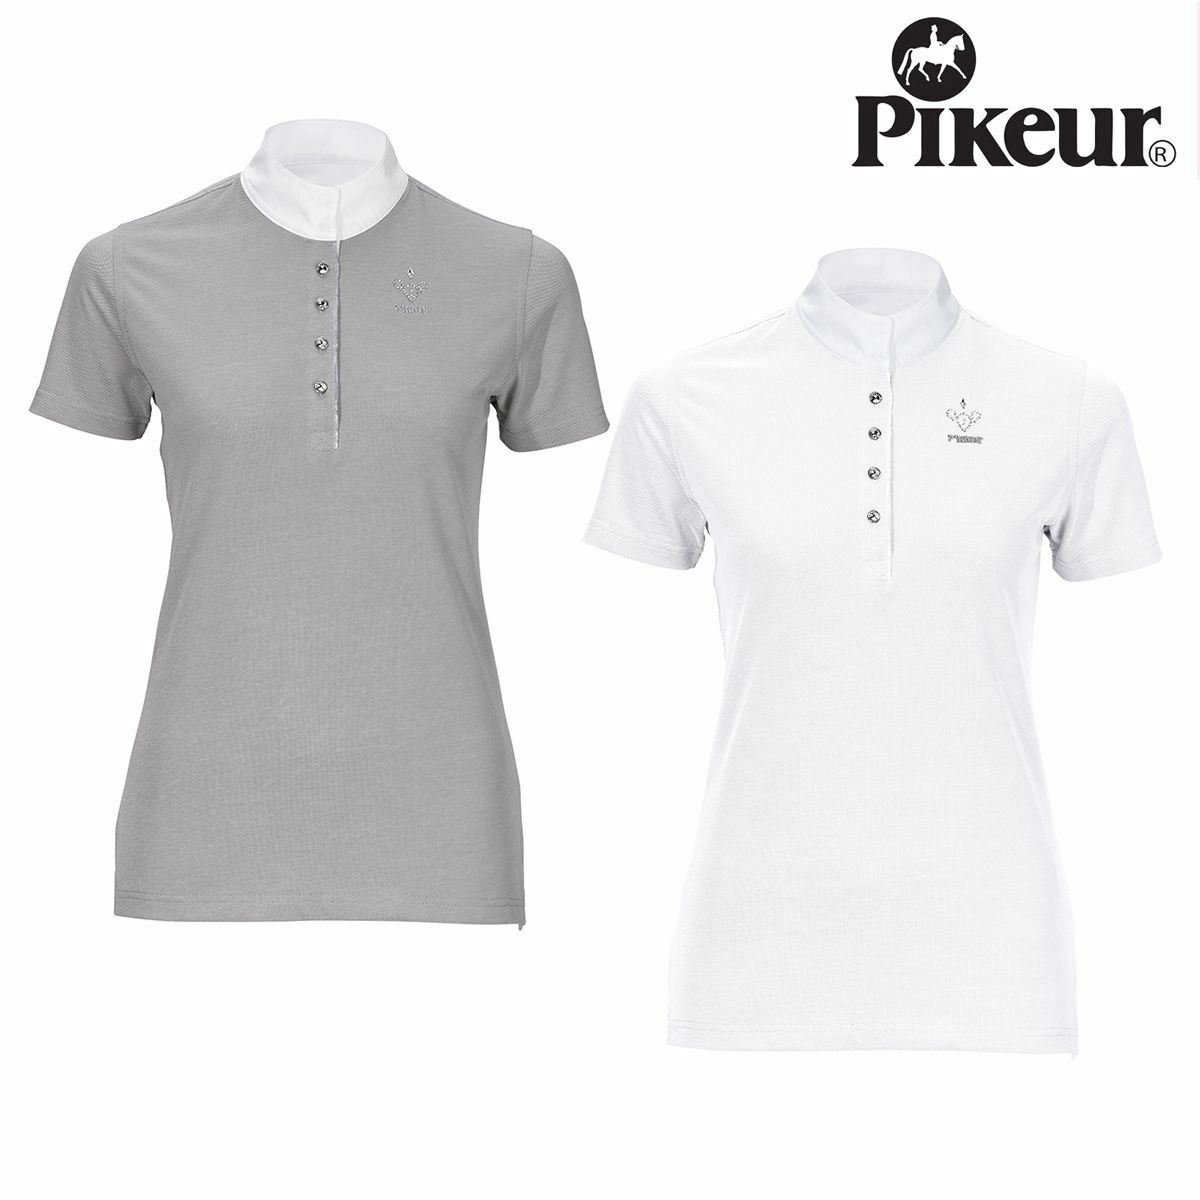 Pikeur  Ladies Competition Short Sleeve Shirt Horse Riding Show Jumping Summer  exciting promotions